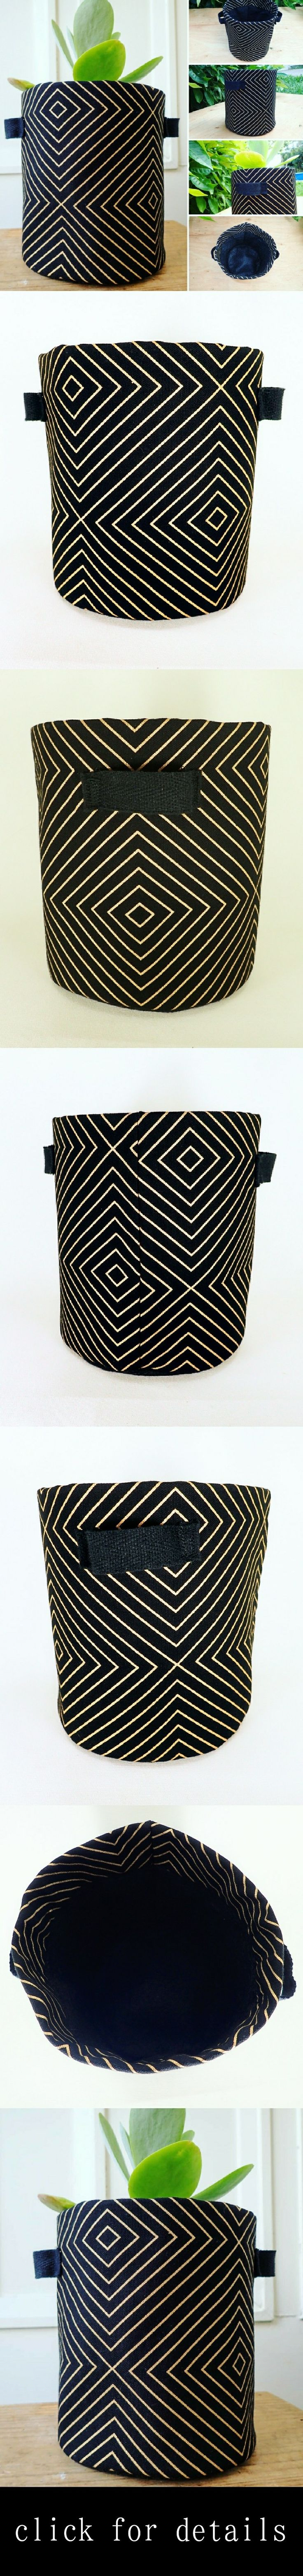 Black and Gold Geometric Deco Stripe print fabric planter, lined with durable geo fabric.  Perfect for plants that love well aerated soil - such as Orchids, Succulents, and Cacti. Versatile, attractive, and strong, these pots can also be used as fabric storage baskets to brighten up any room. Check my etsy store for details!